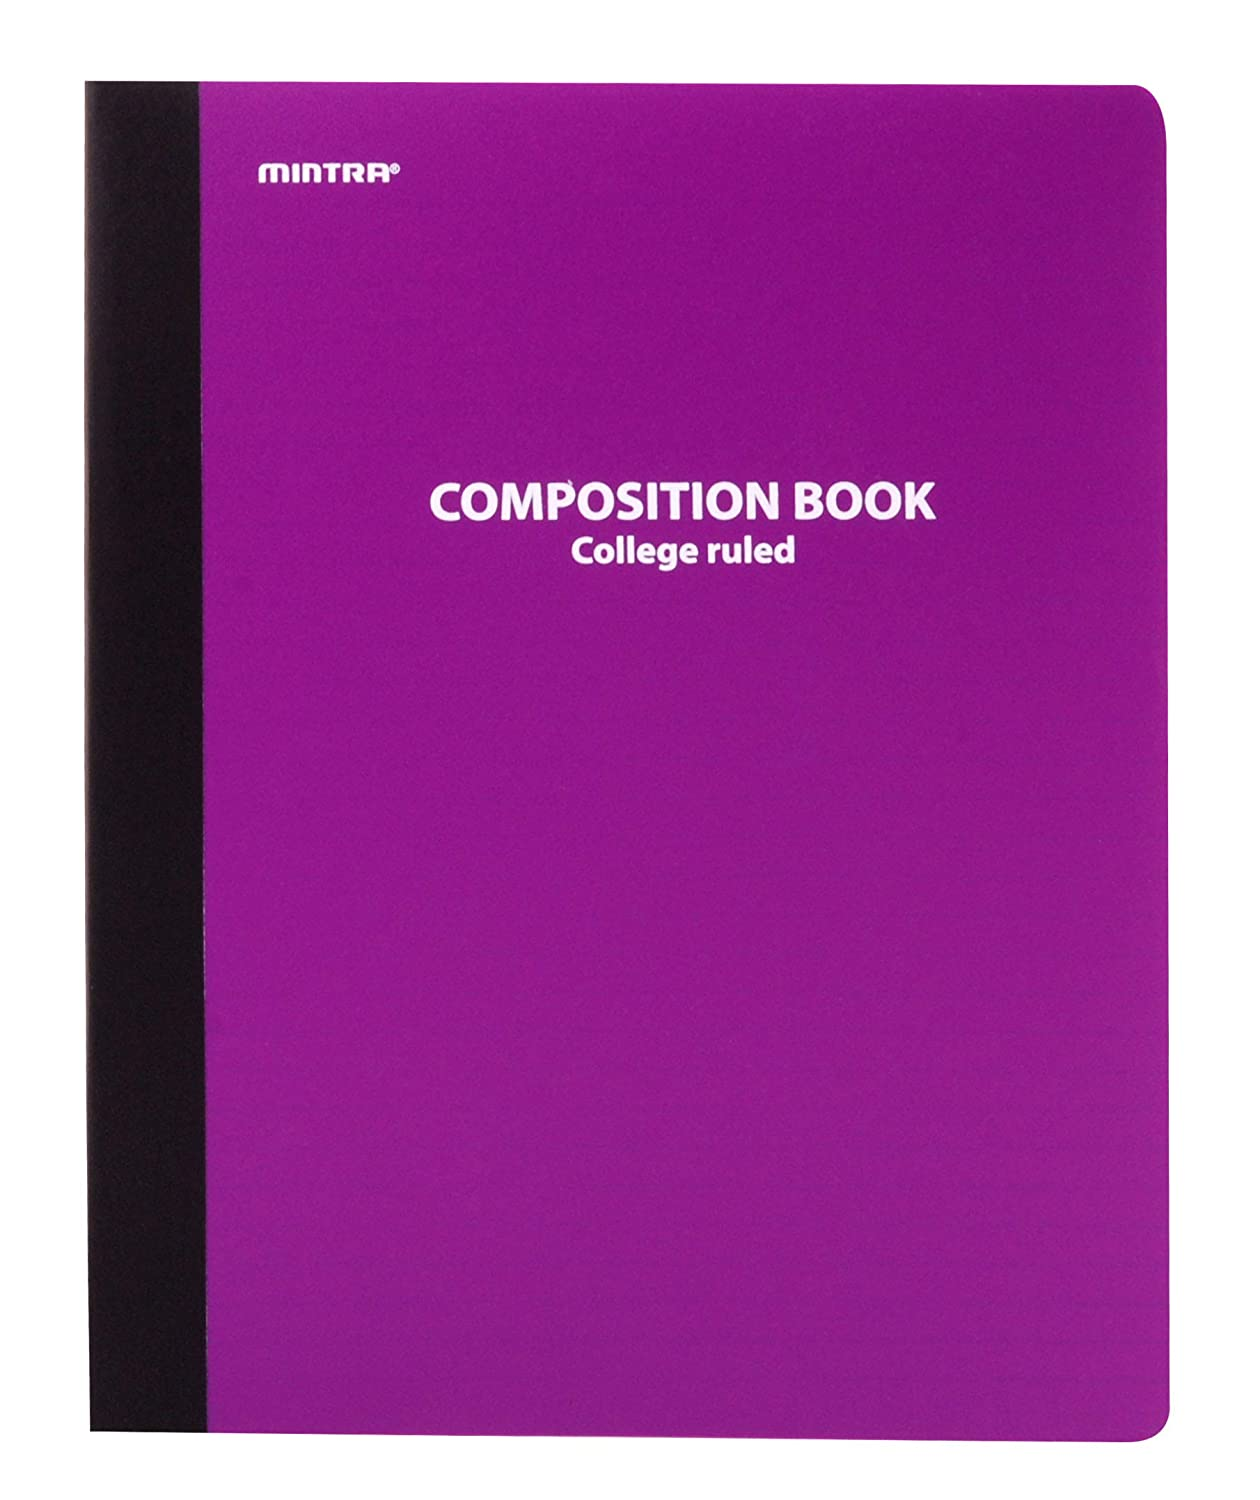 24 units Mintra Office Composition Books Creative Grade K-2 Primary Ruled Notebooks 6-4pks Hardcover